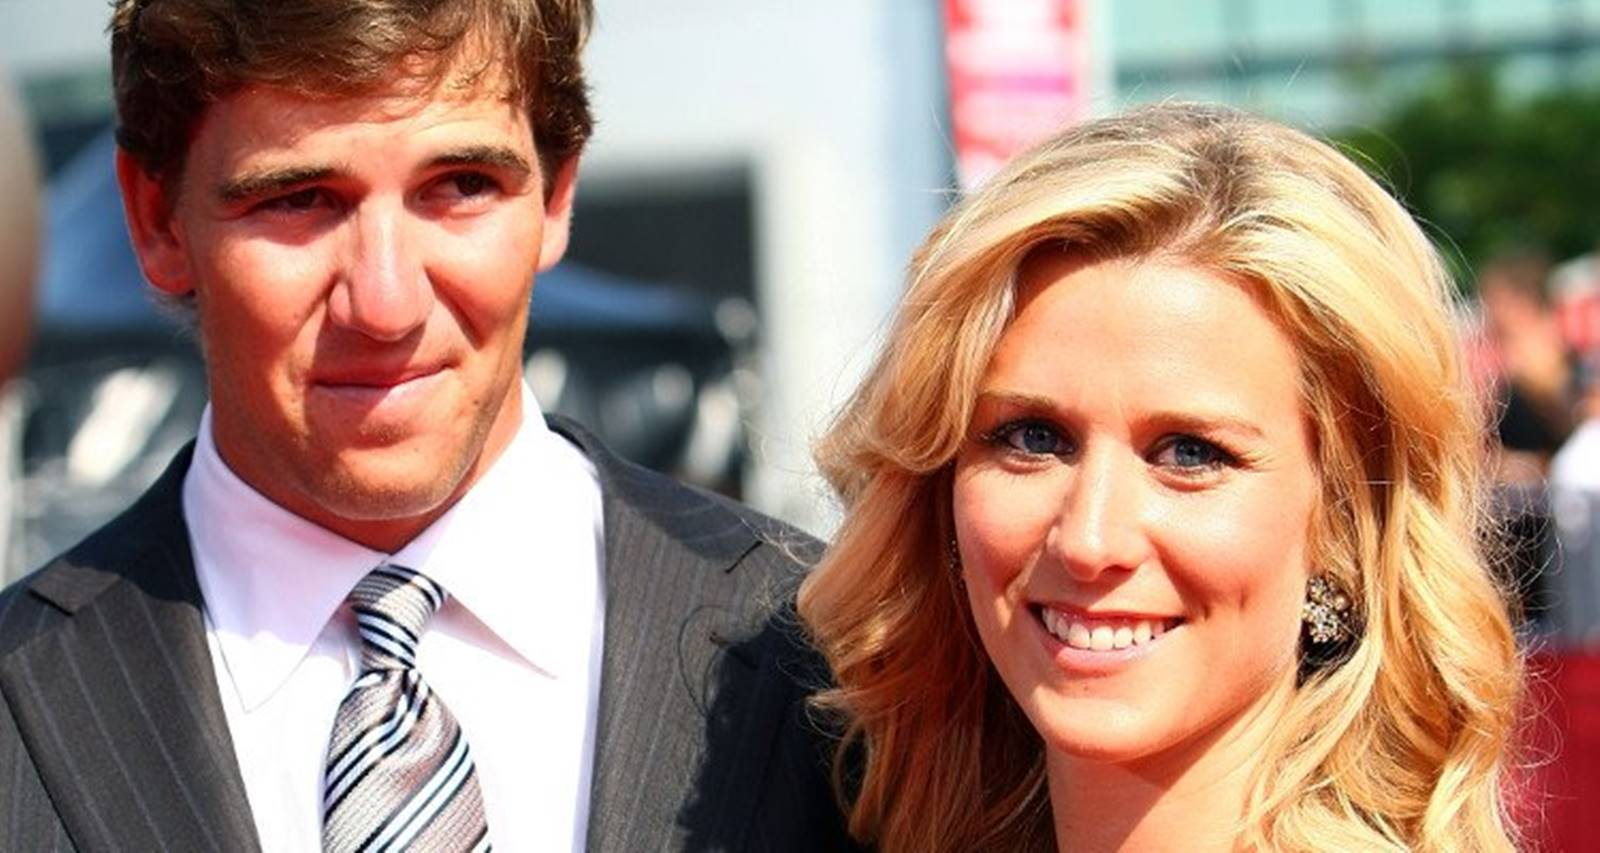 Eli Manning's Wife: Abby Mcgrew, Wiki, Age, Family, Early Life and Facts To Know